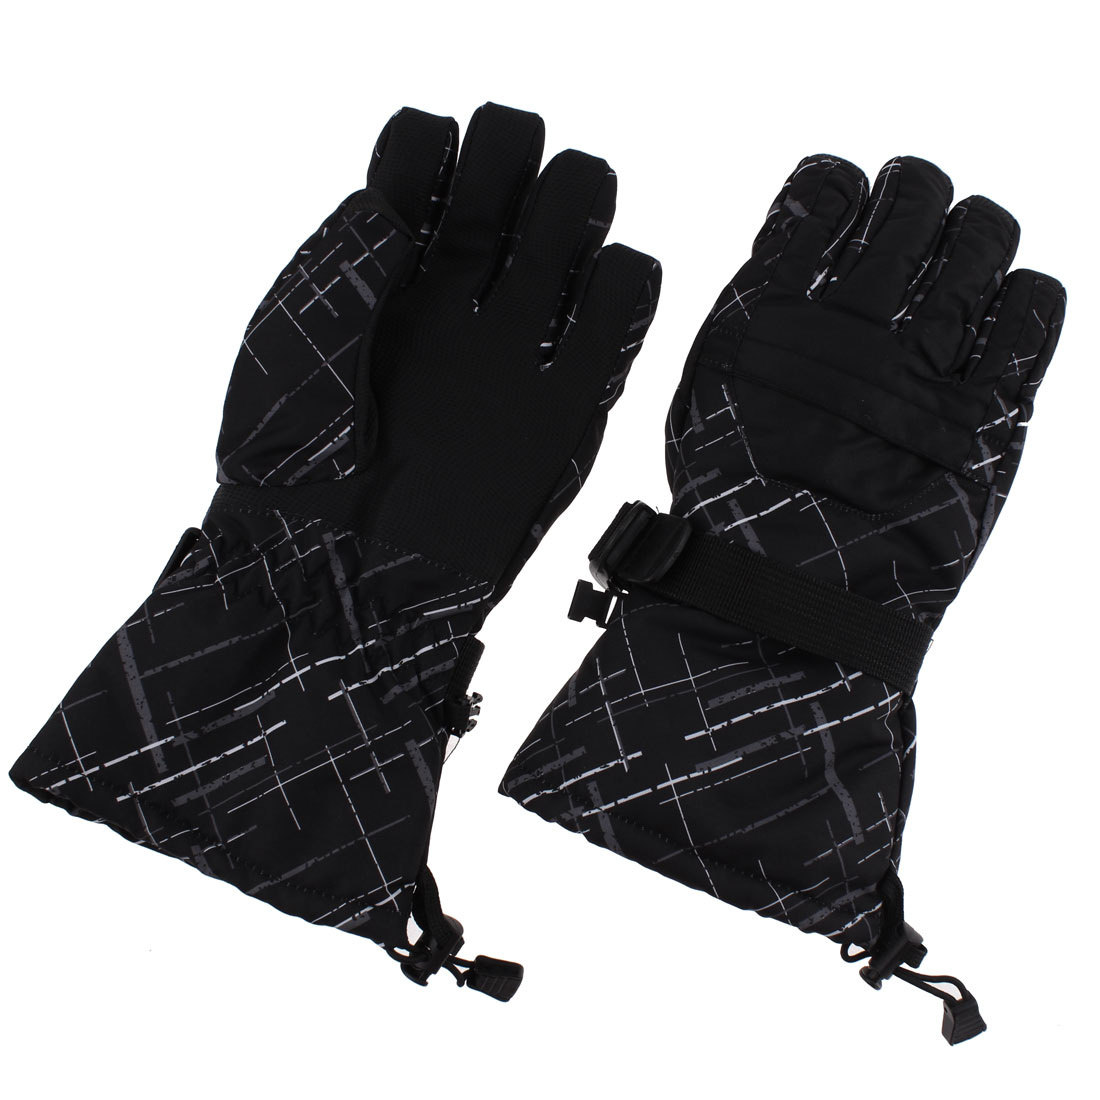 XL Winter Waterproof Worm Men Snow Skiing Full Finger Gloves Black Graffiti Pair